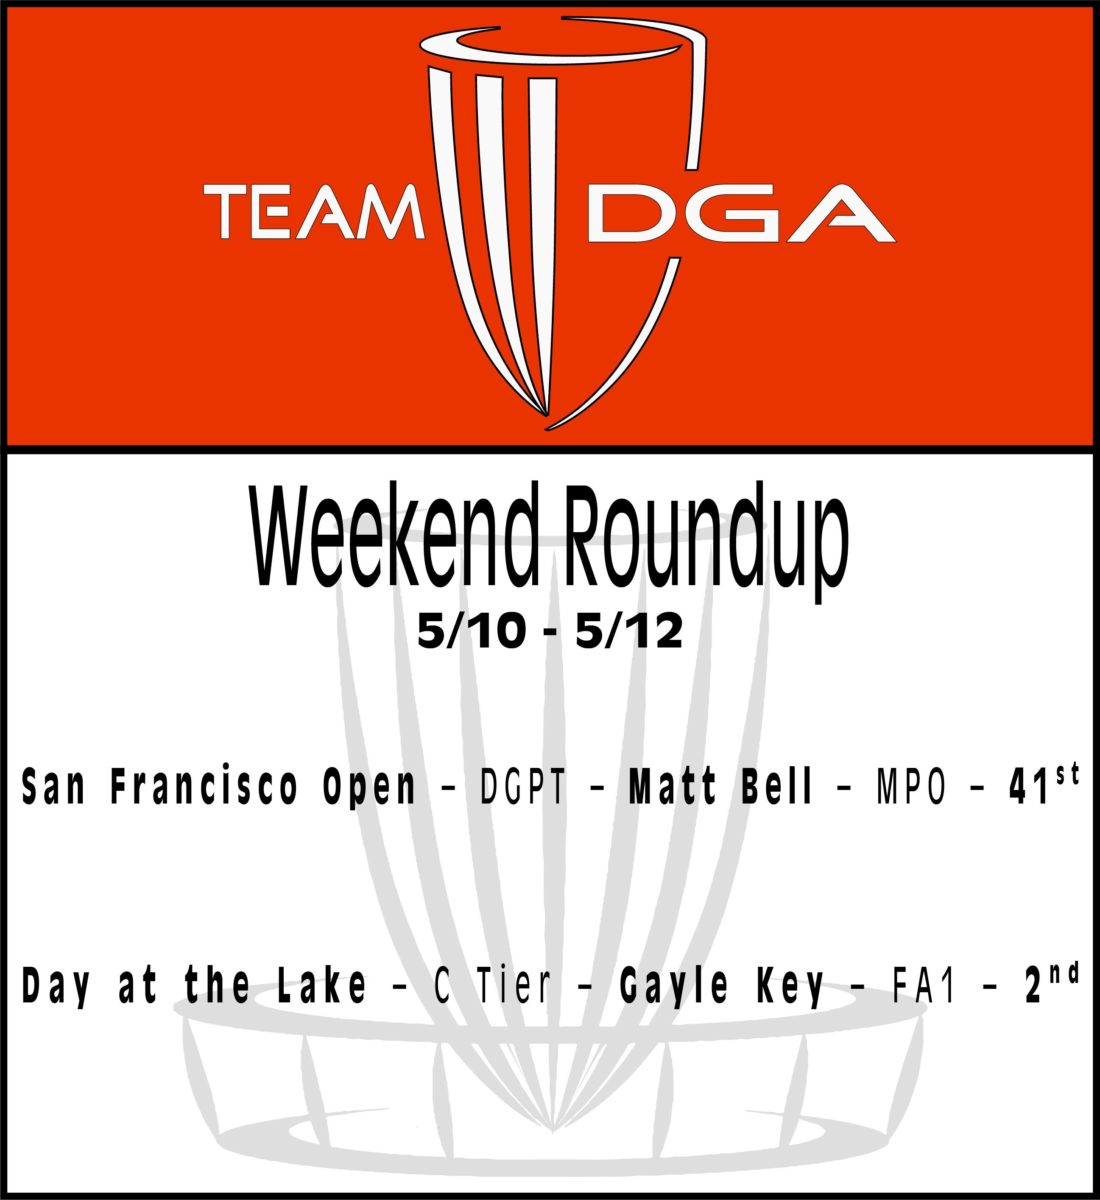 Team DGA Weekend Roundup 5/10 - 5/12